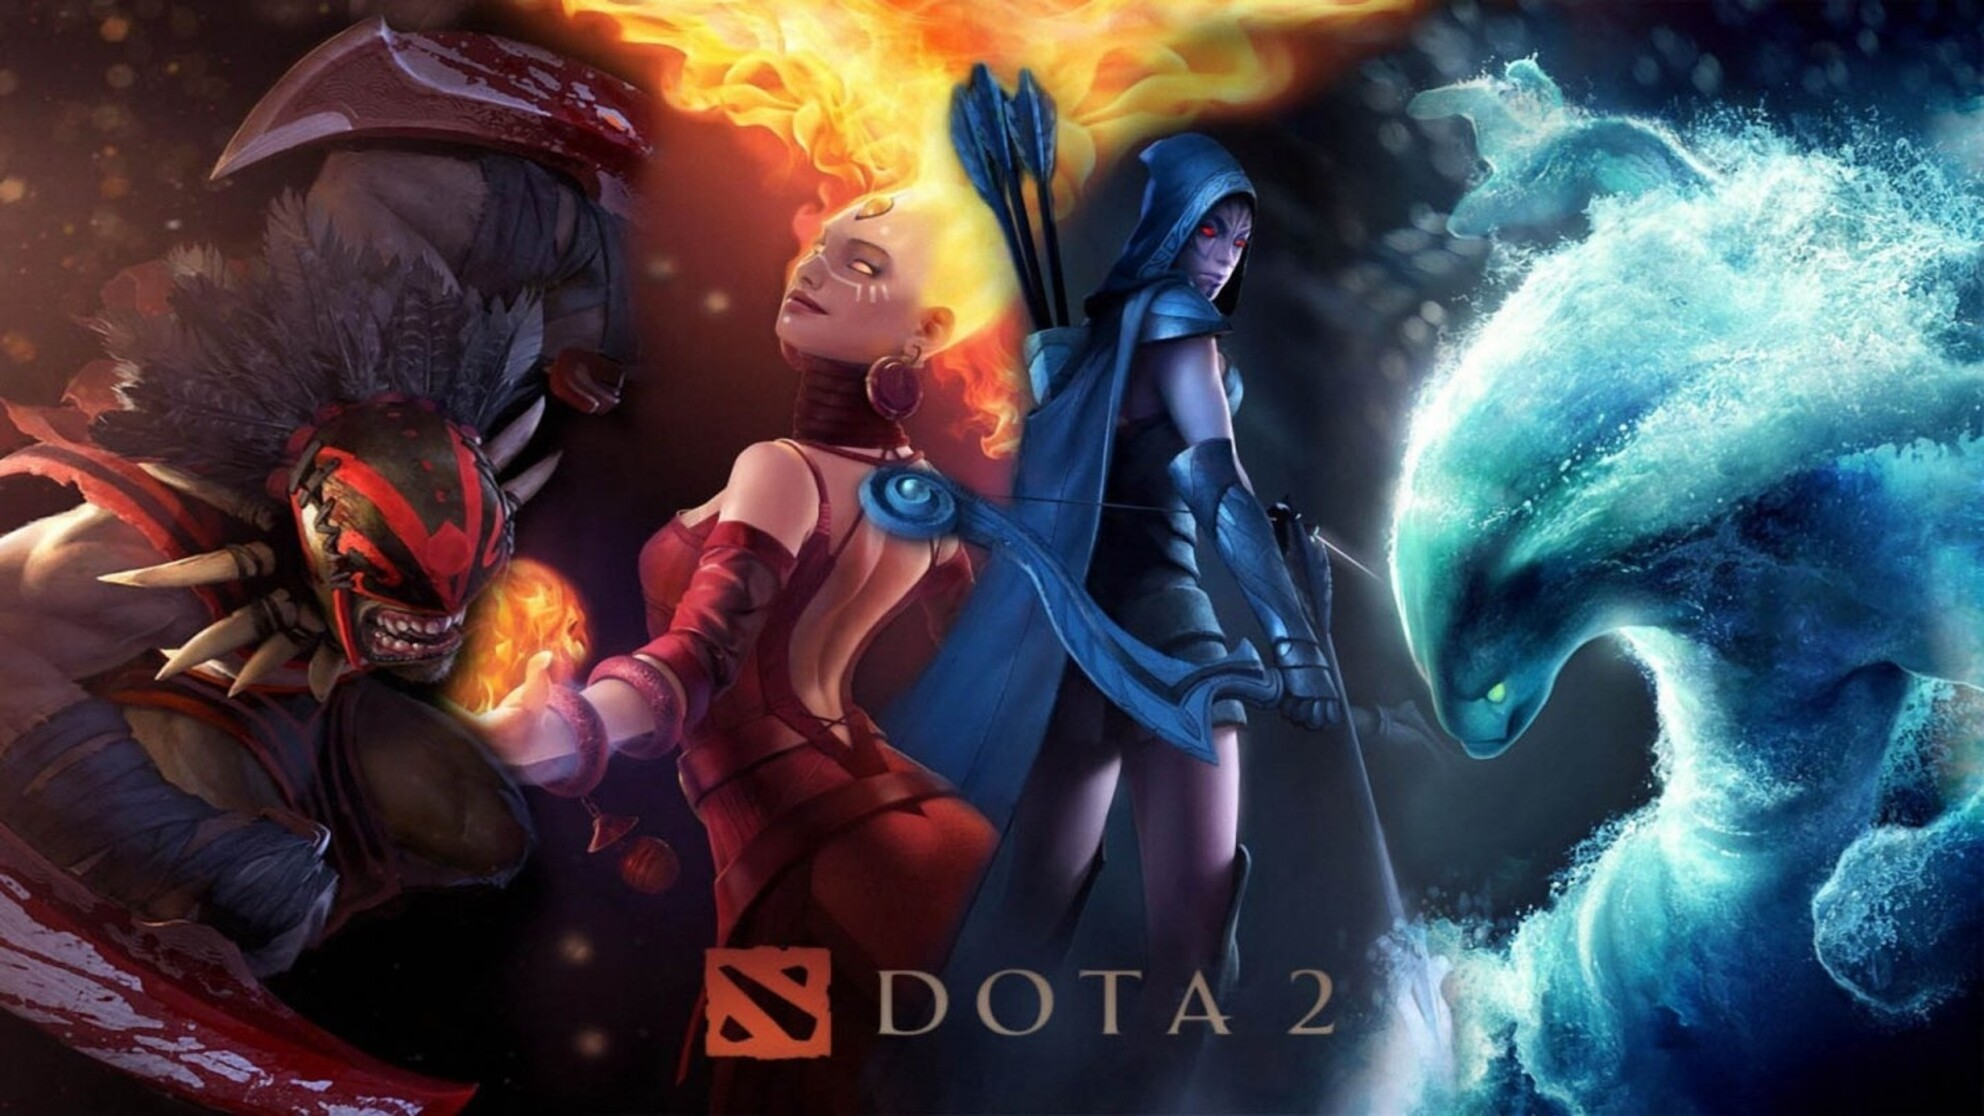 Dota 2 - Tier 5 Neutral Items Overview